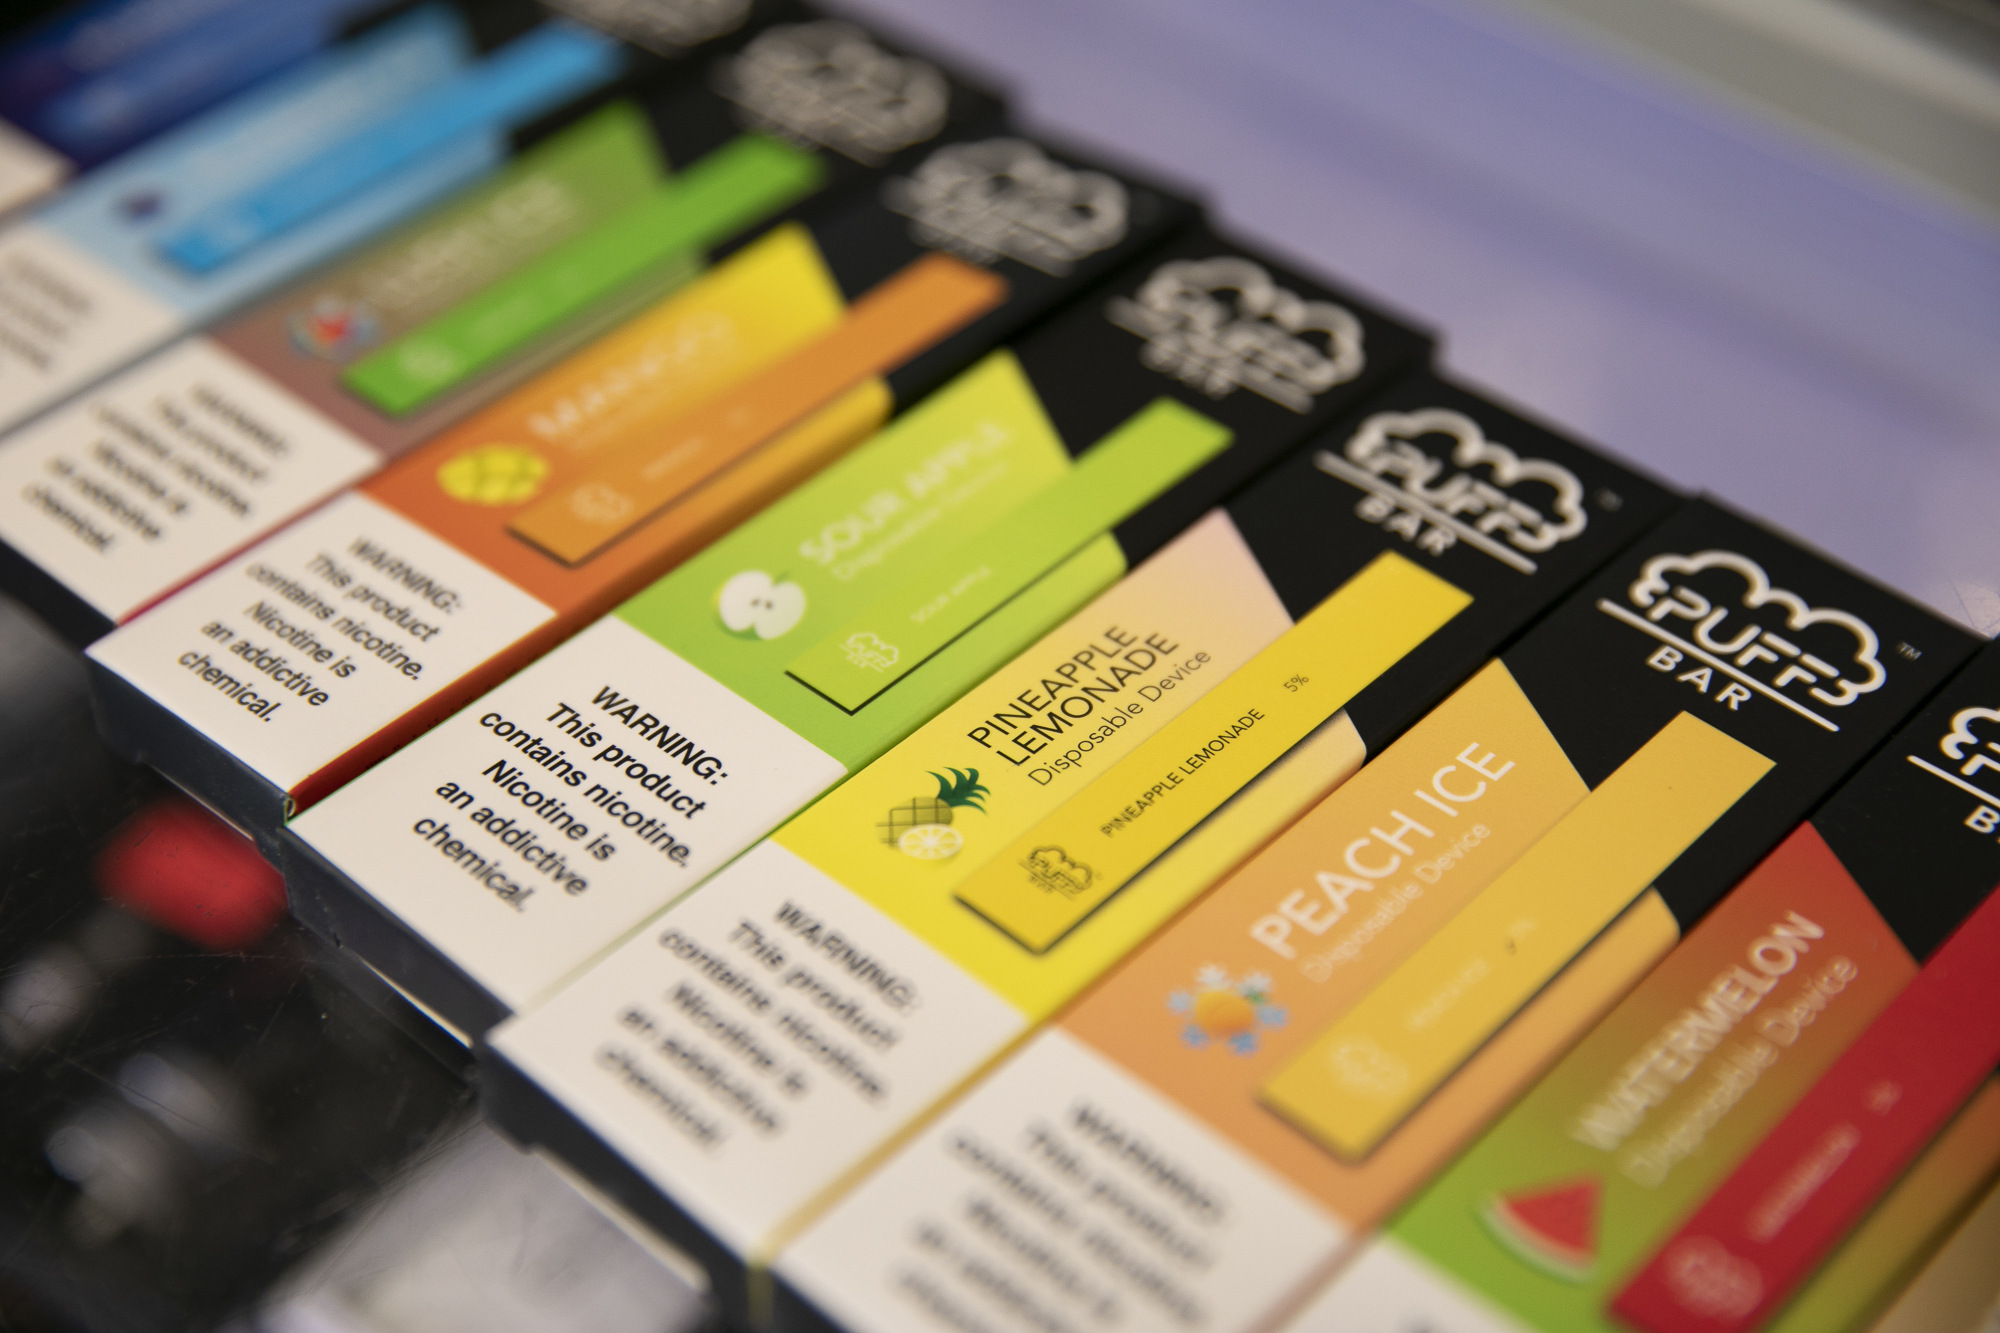 Disposable e-cigarettes with flavors like pineapple lemonade, sour apple and watermelon at a smoke shop